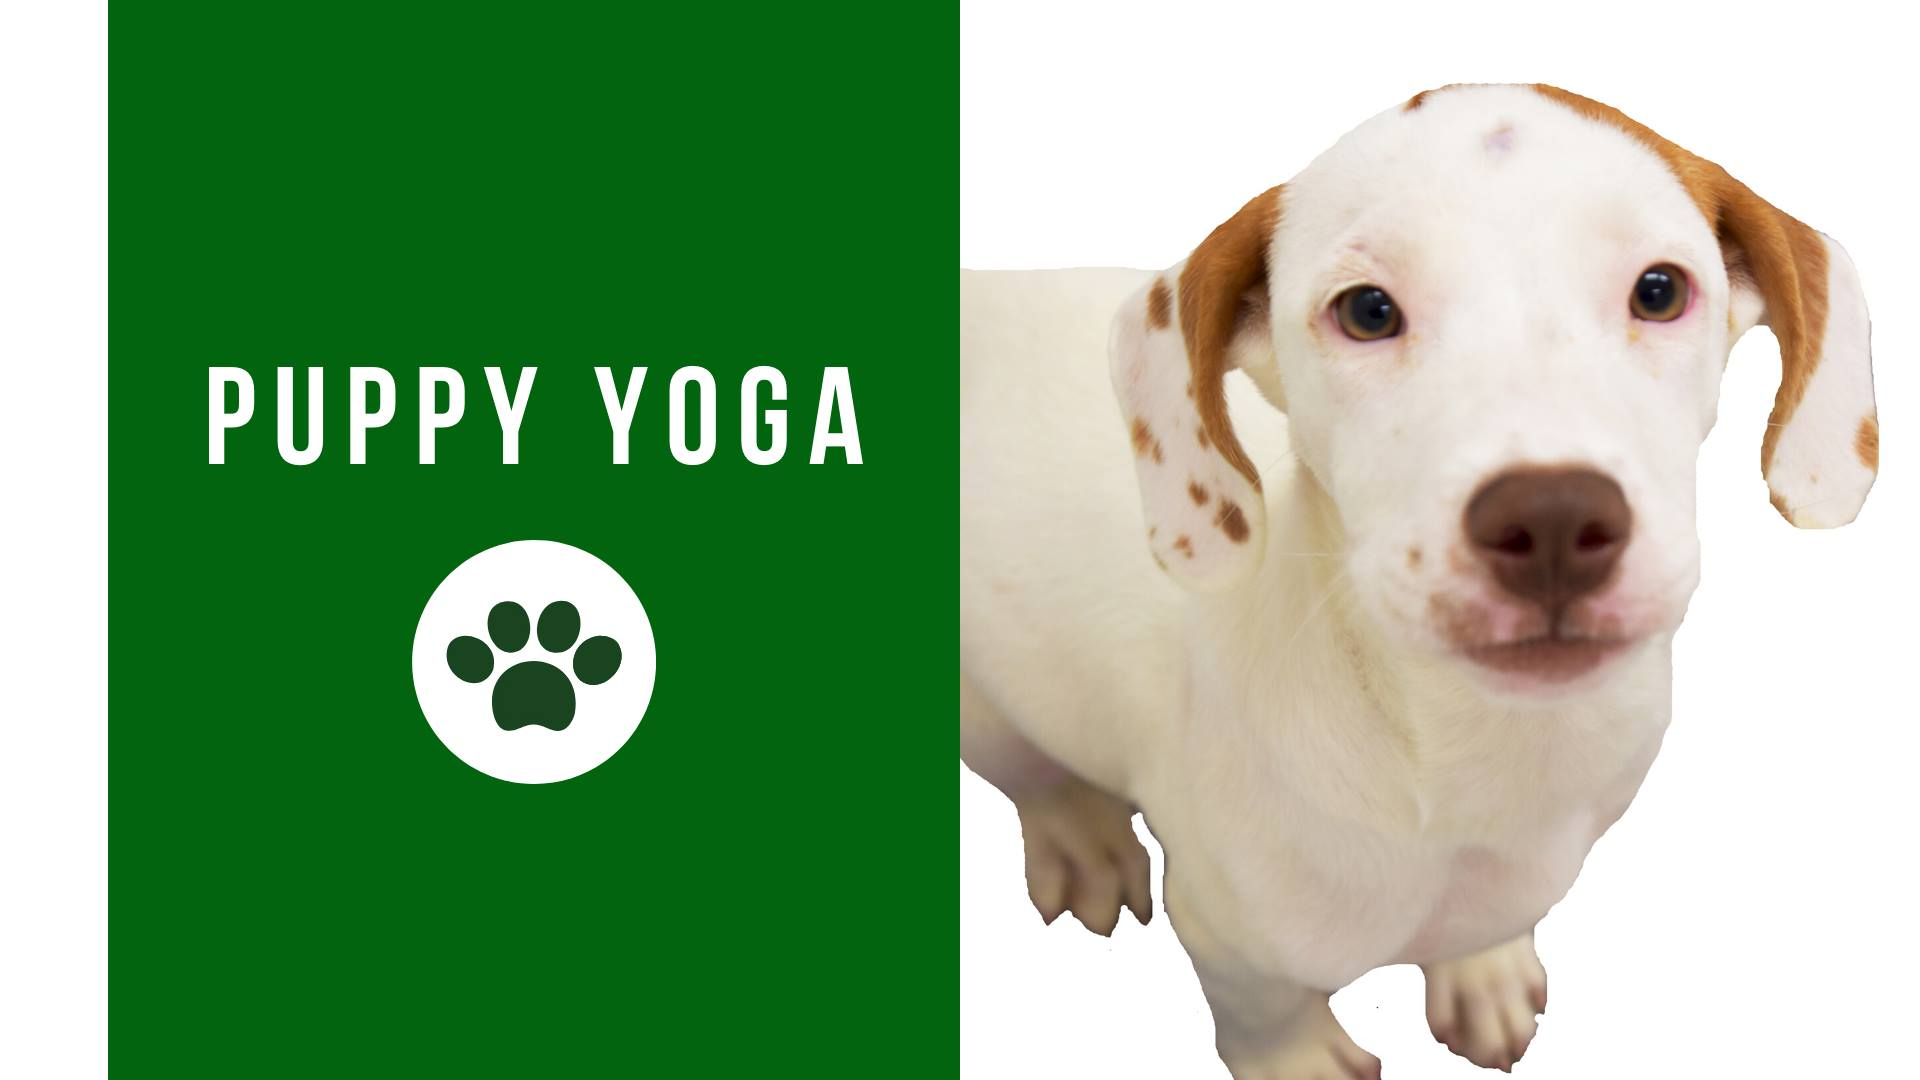 Puppy Yoga at Lambs Farm